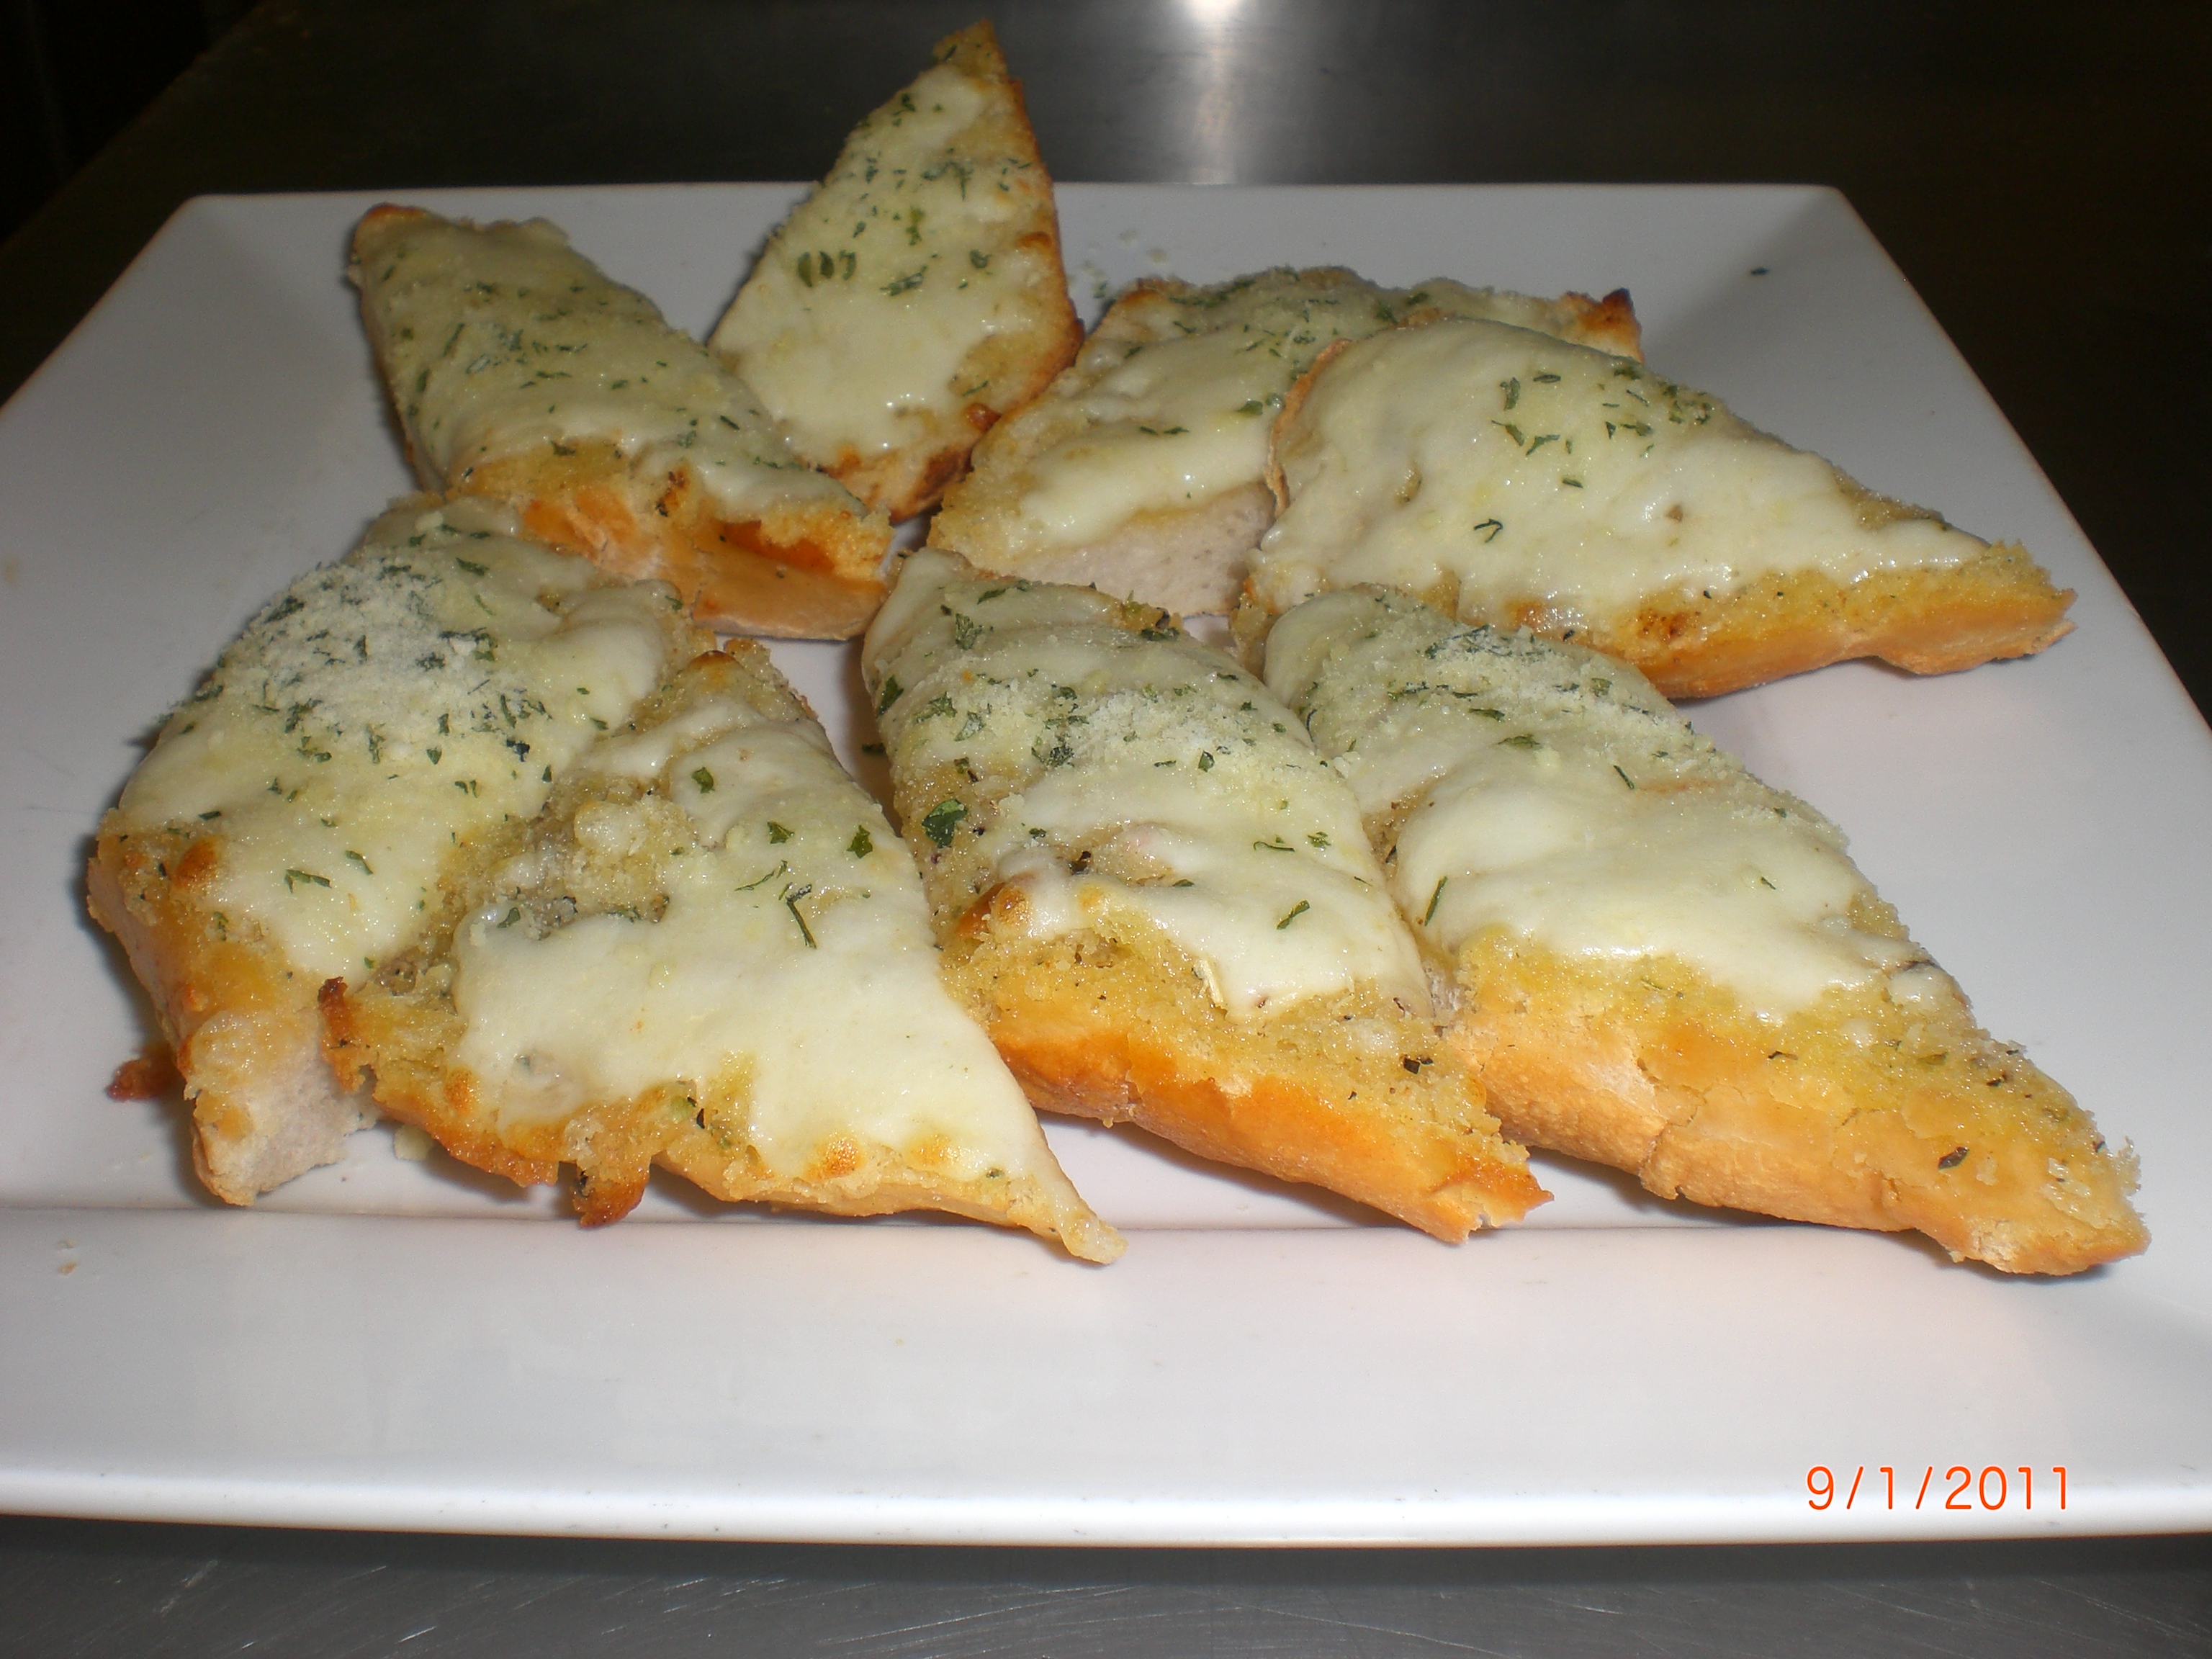 GARLIC BREAD WITH CHEESE Image